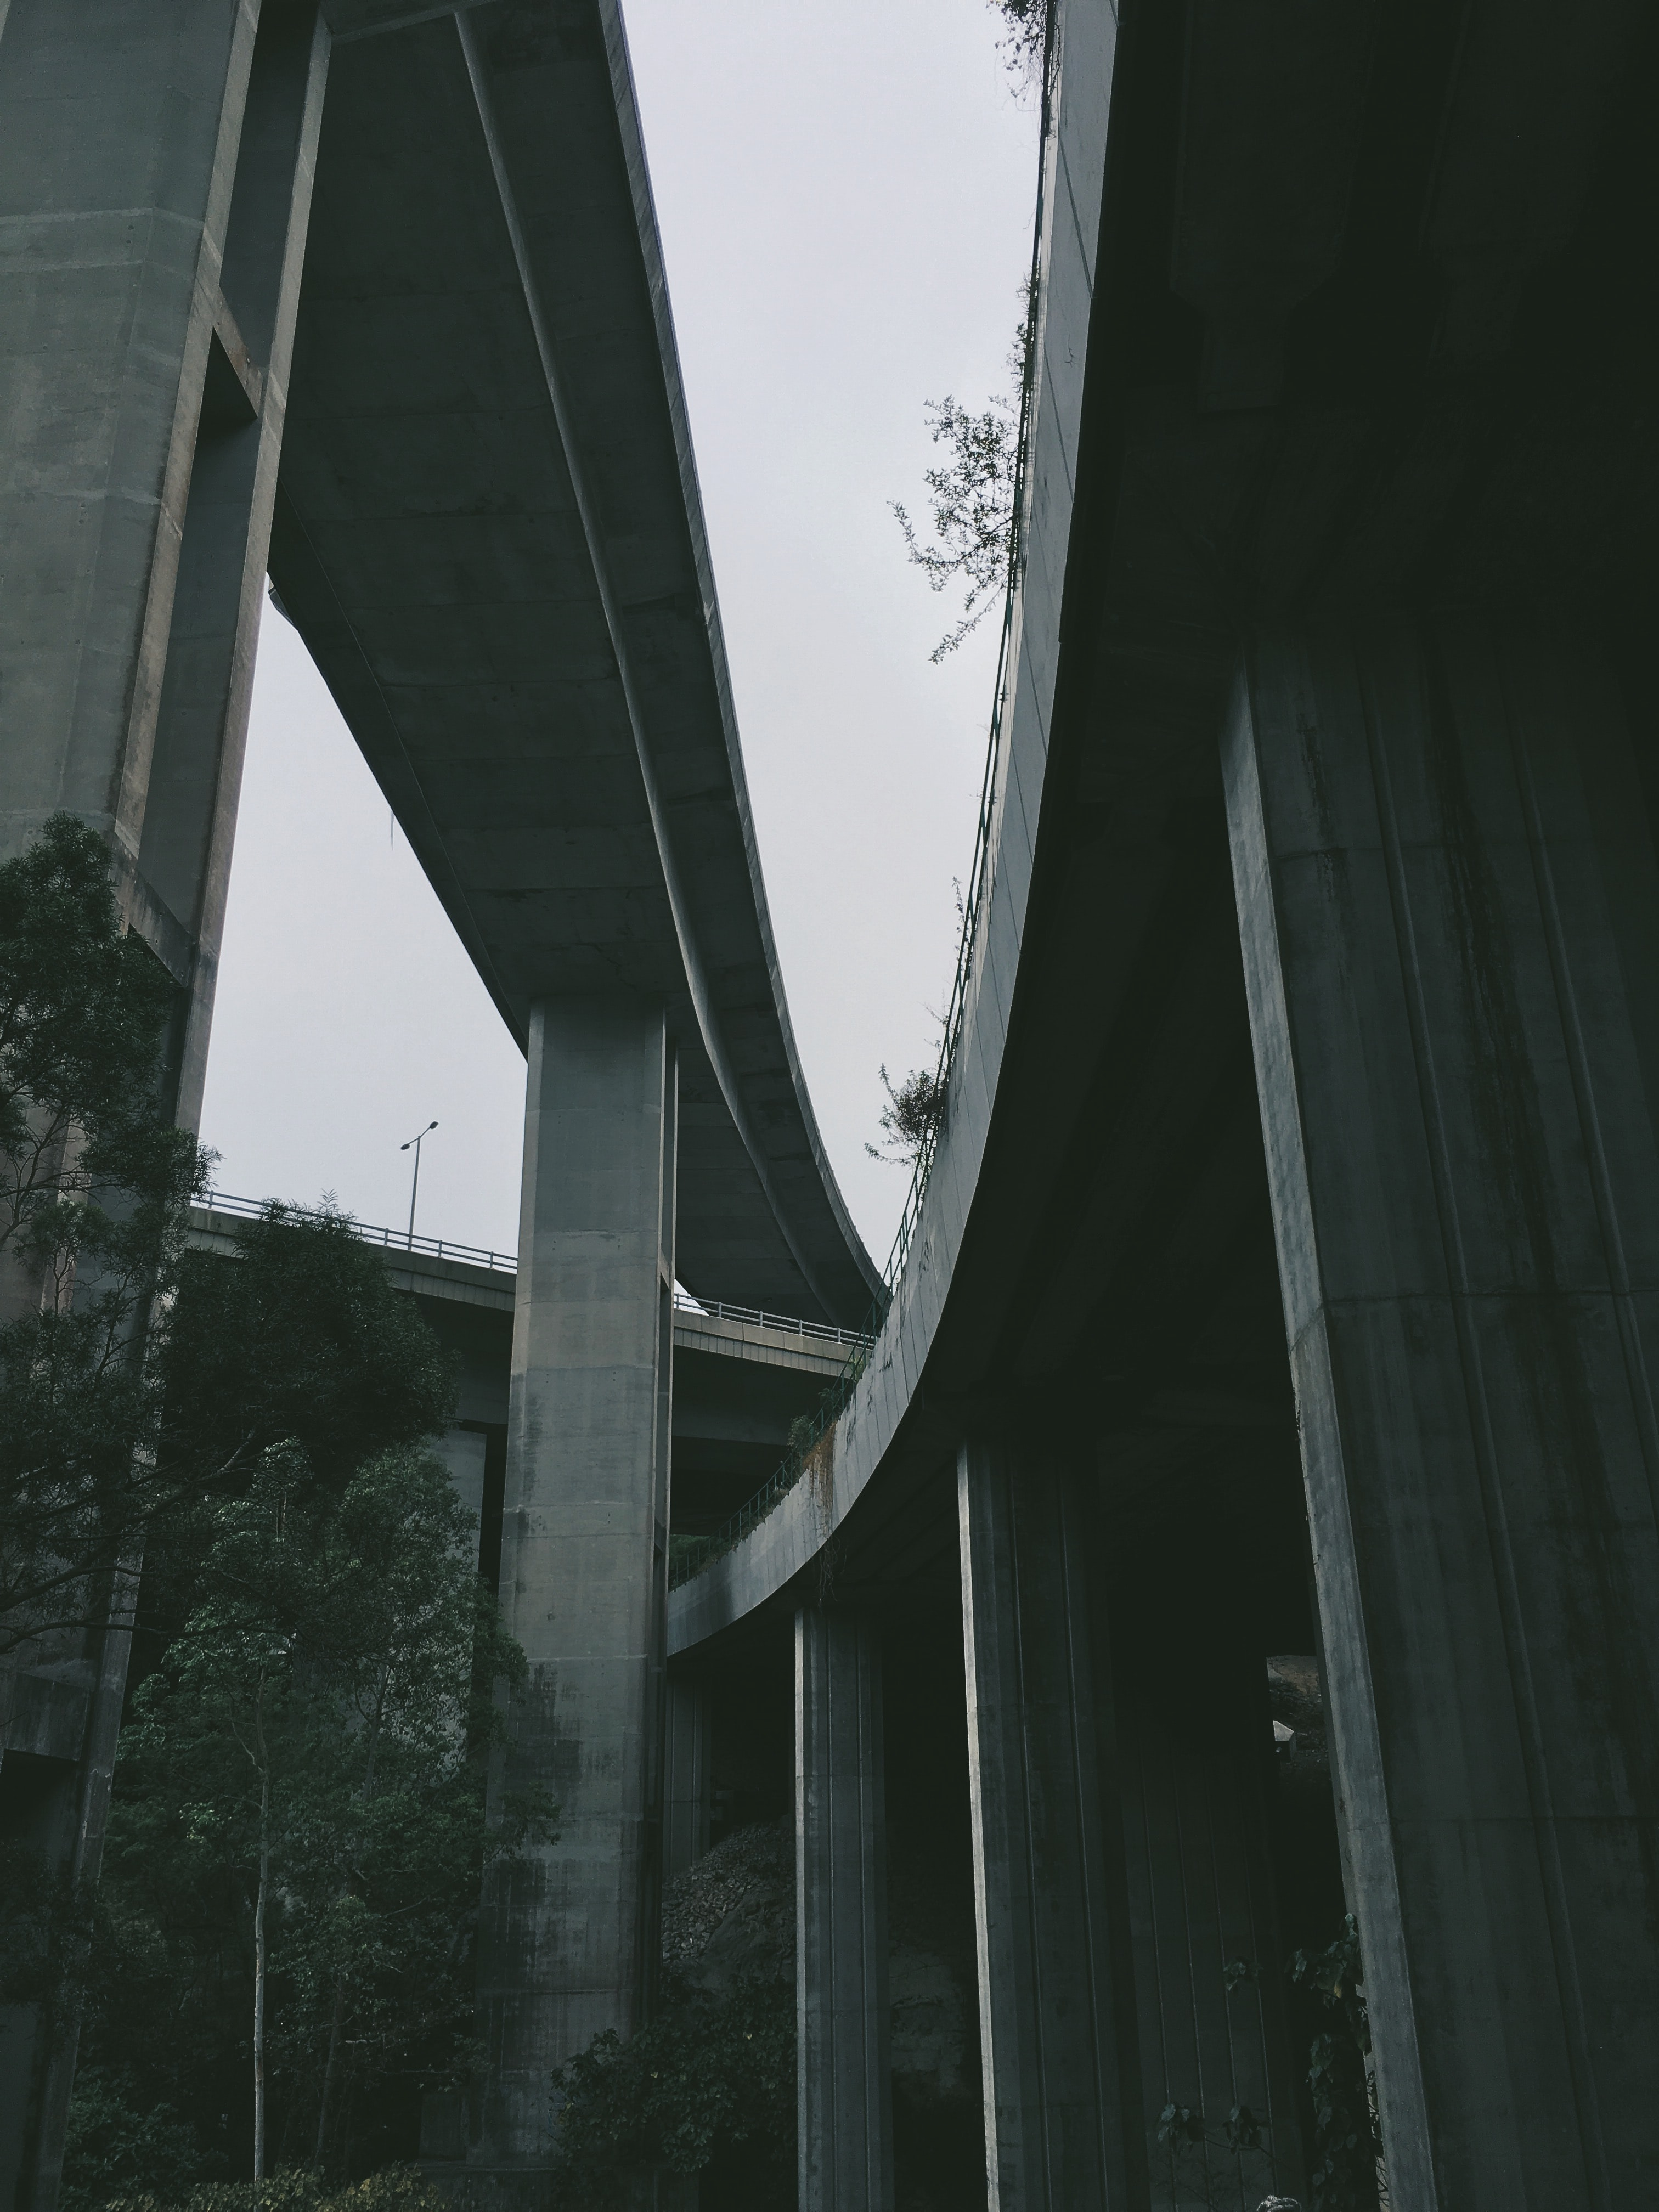 Looking up at the multiple overpasses from below in Ting Kau, Hong Kong.